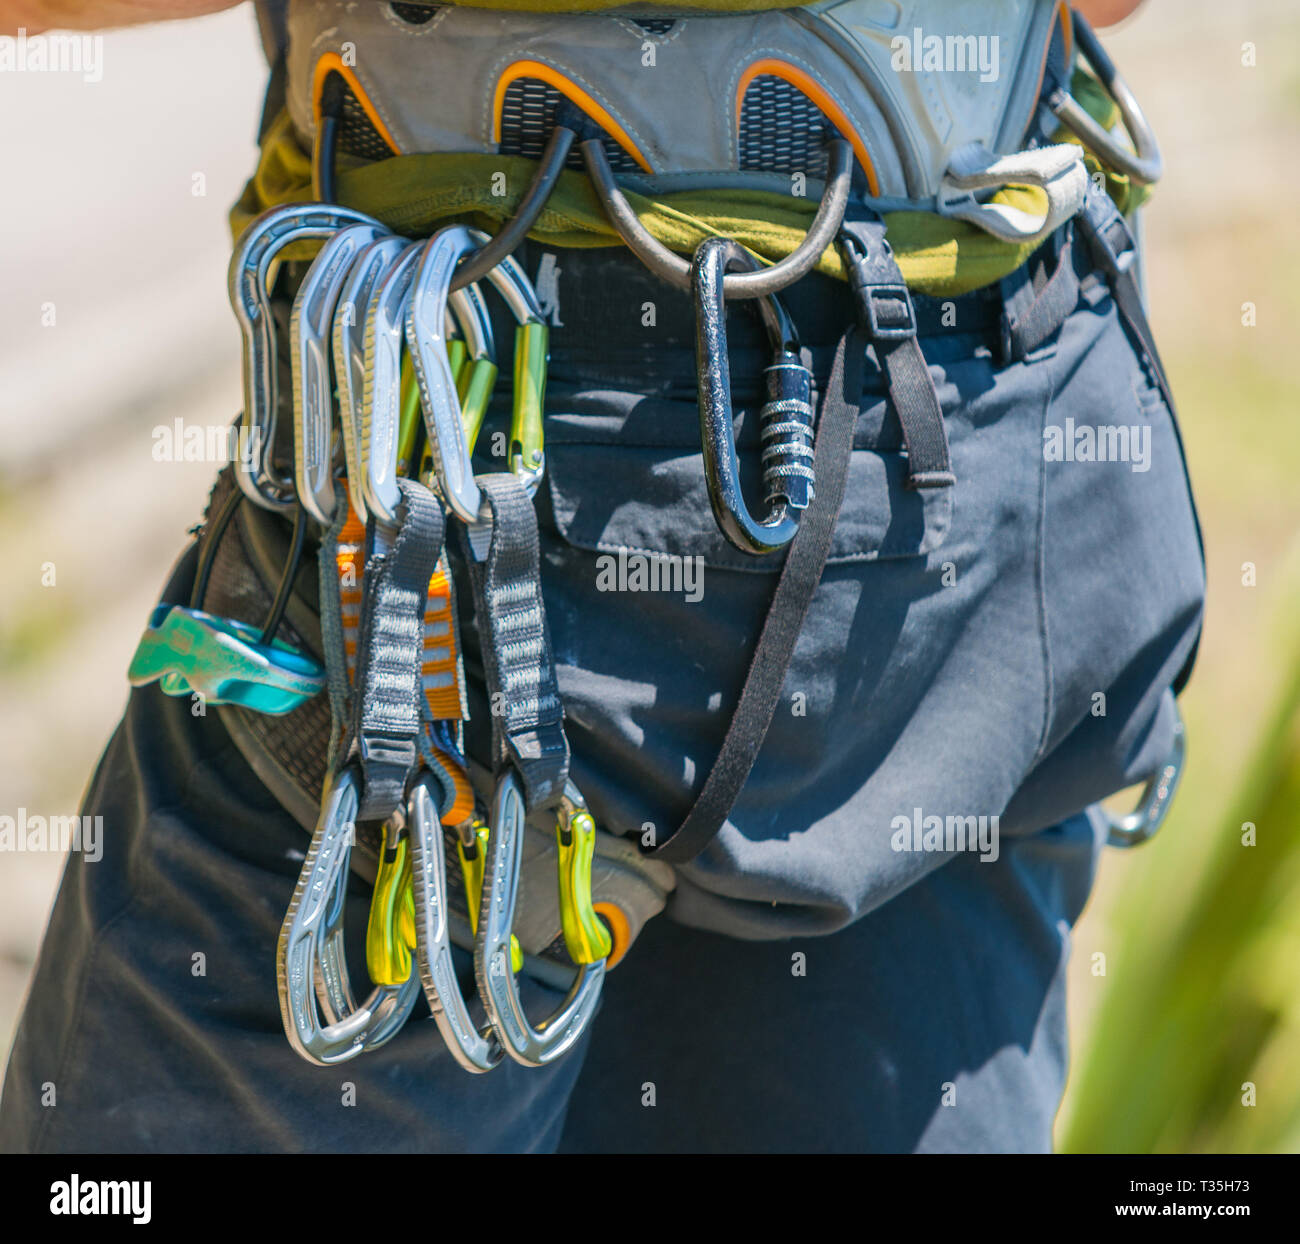 Mountaineering safety equipment hanging on harness close-up, ready to start. - Stock Image